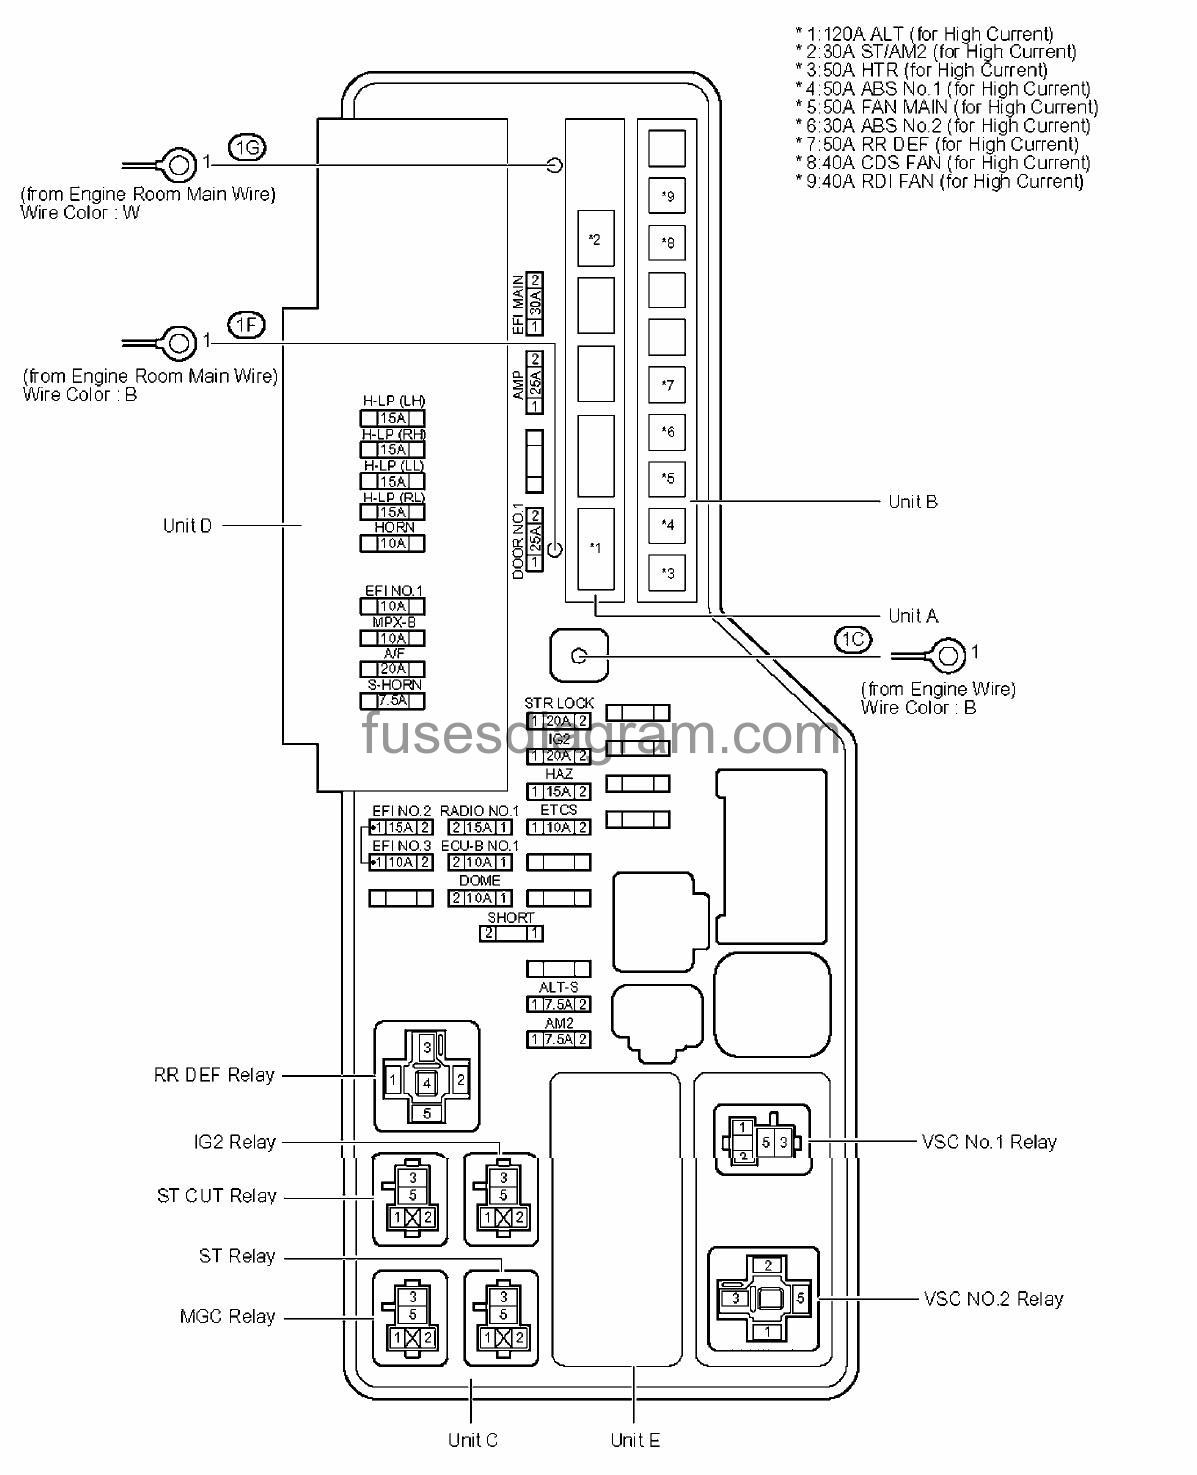 hight resolution of for of a toyota solara fuse box diagram